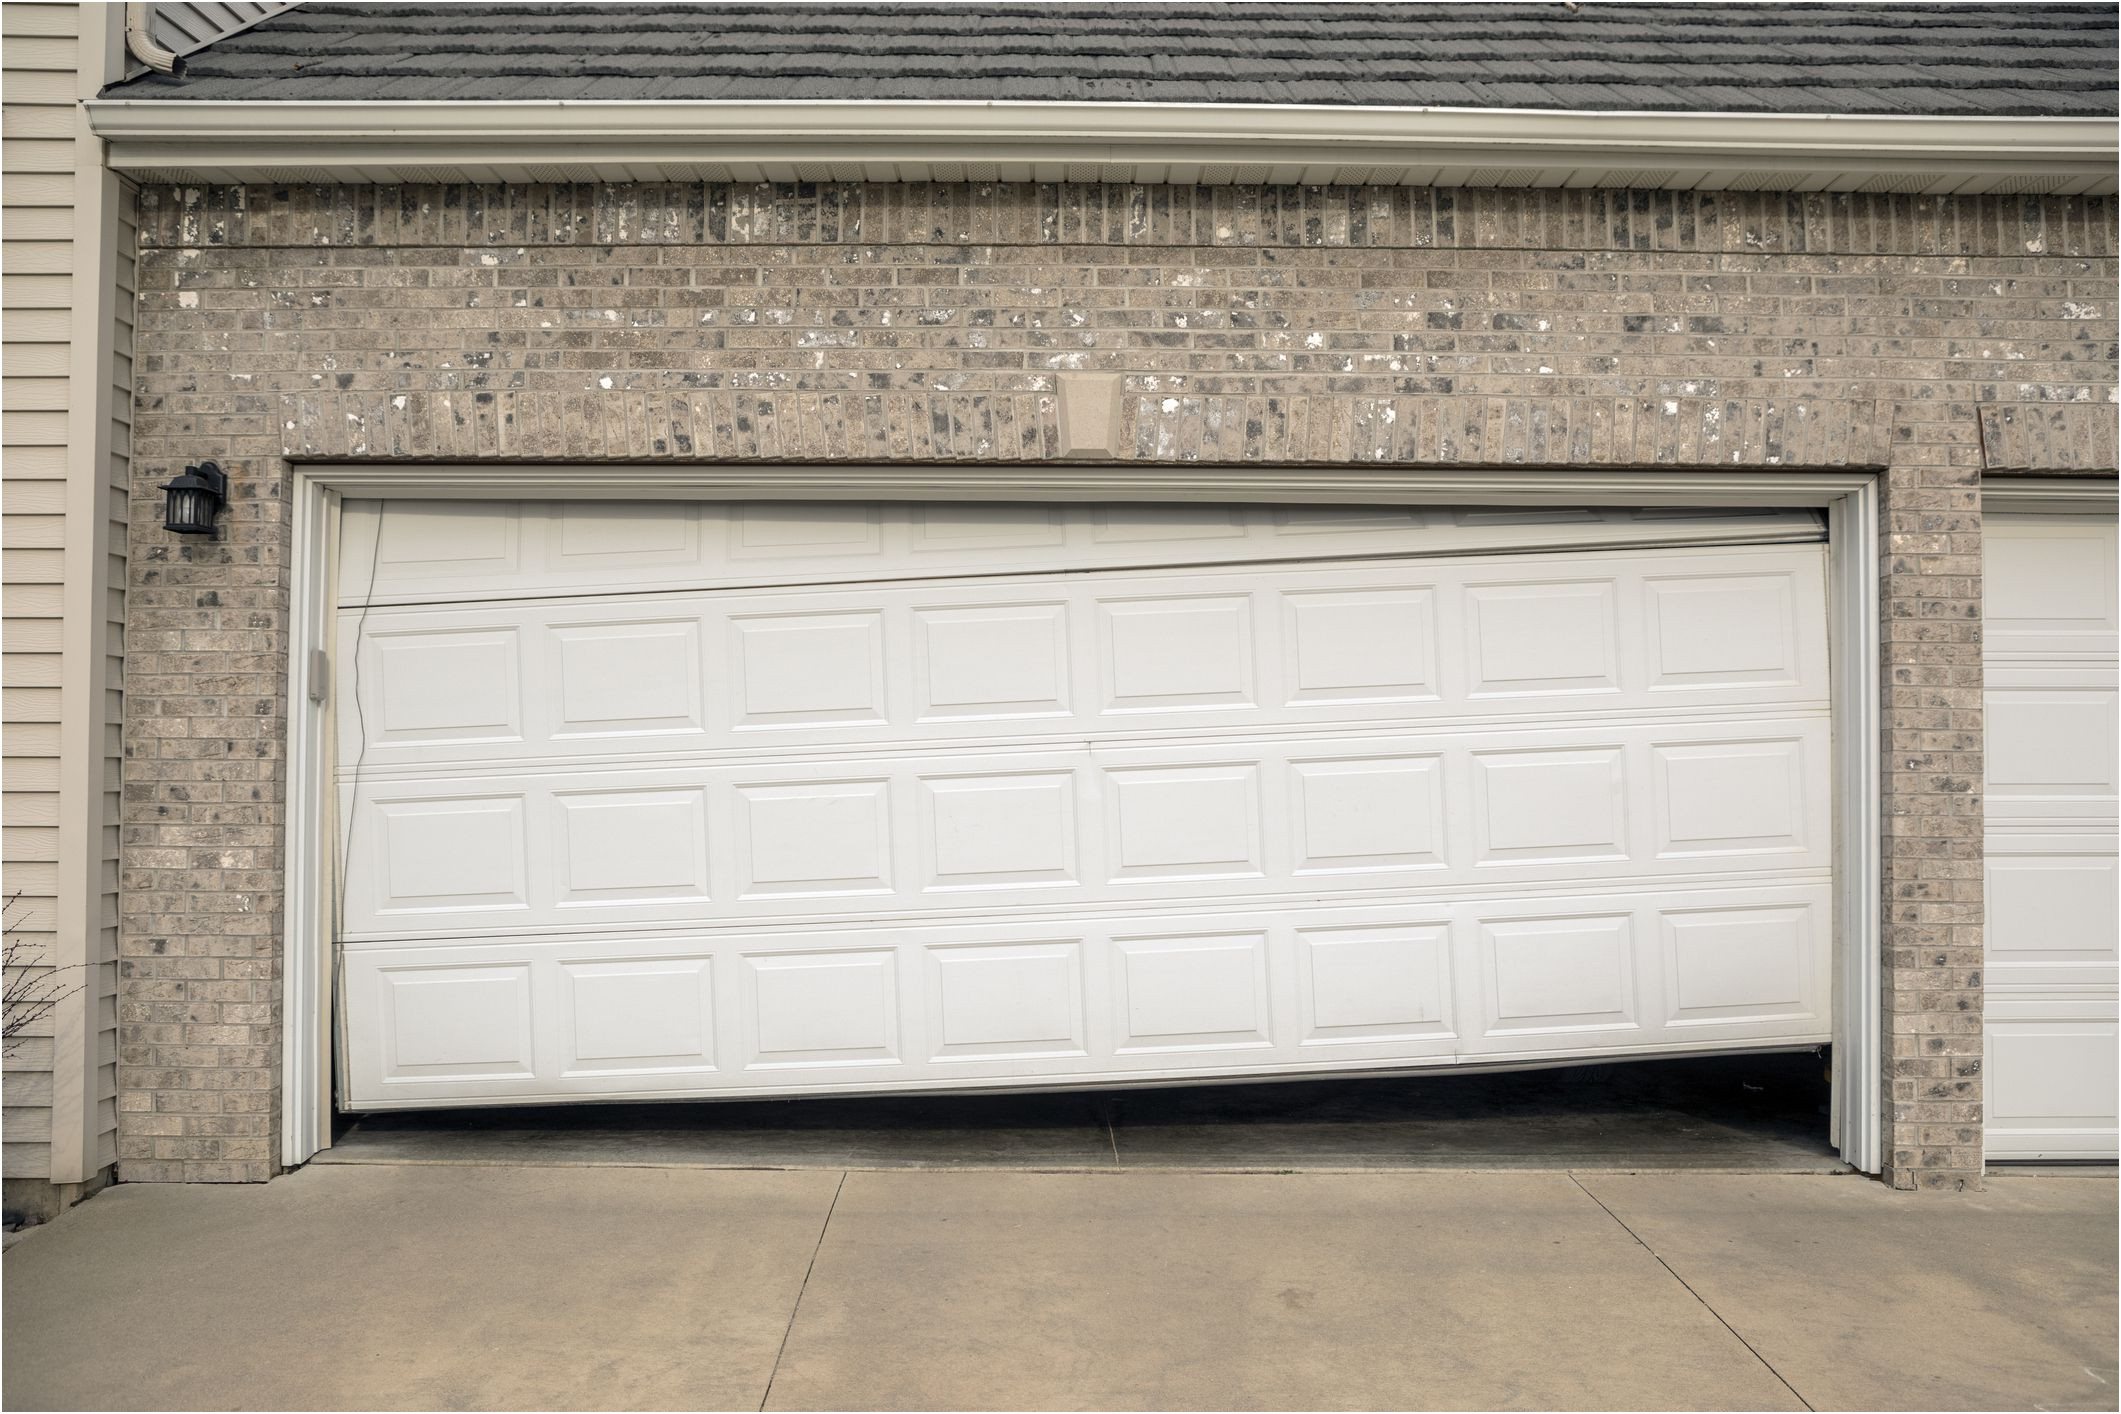 New Garage Door Shifted to One Side